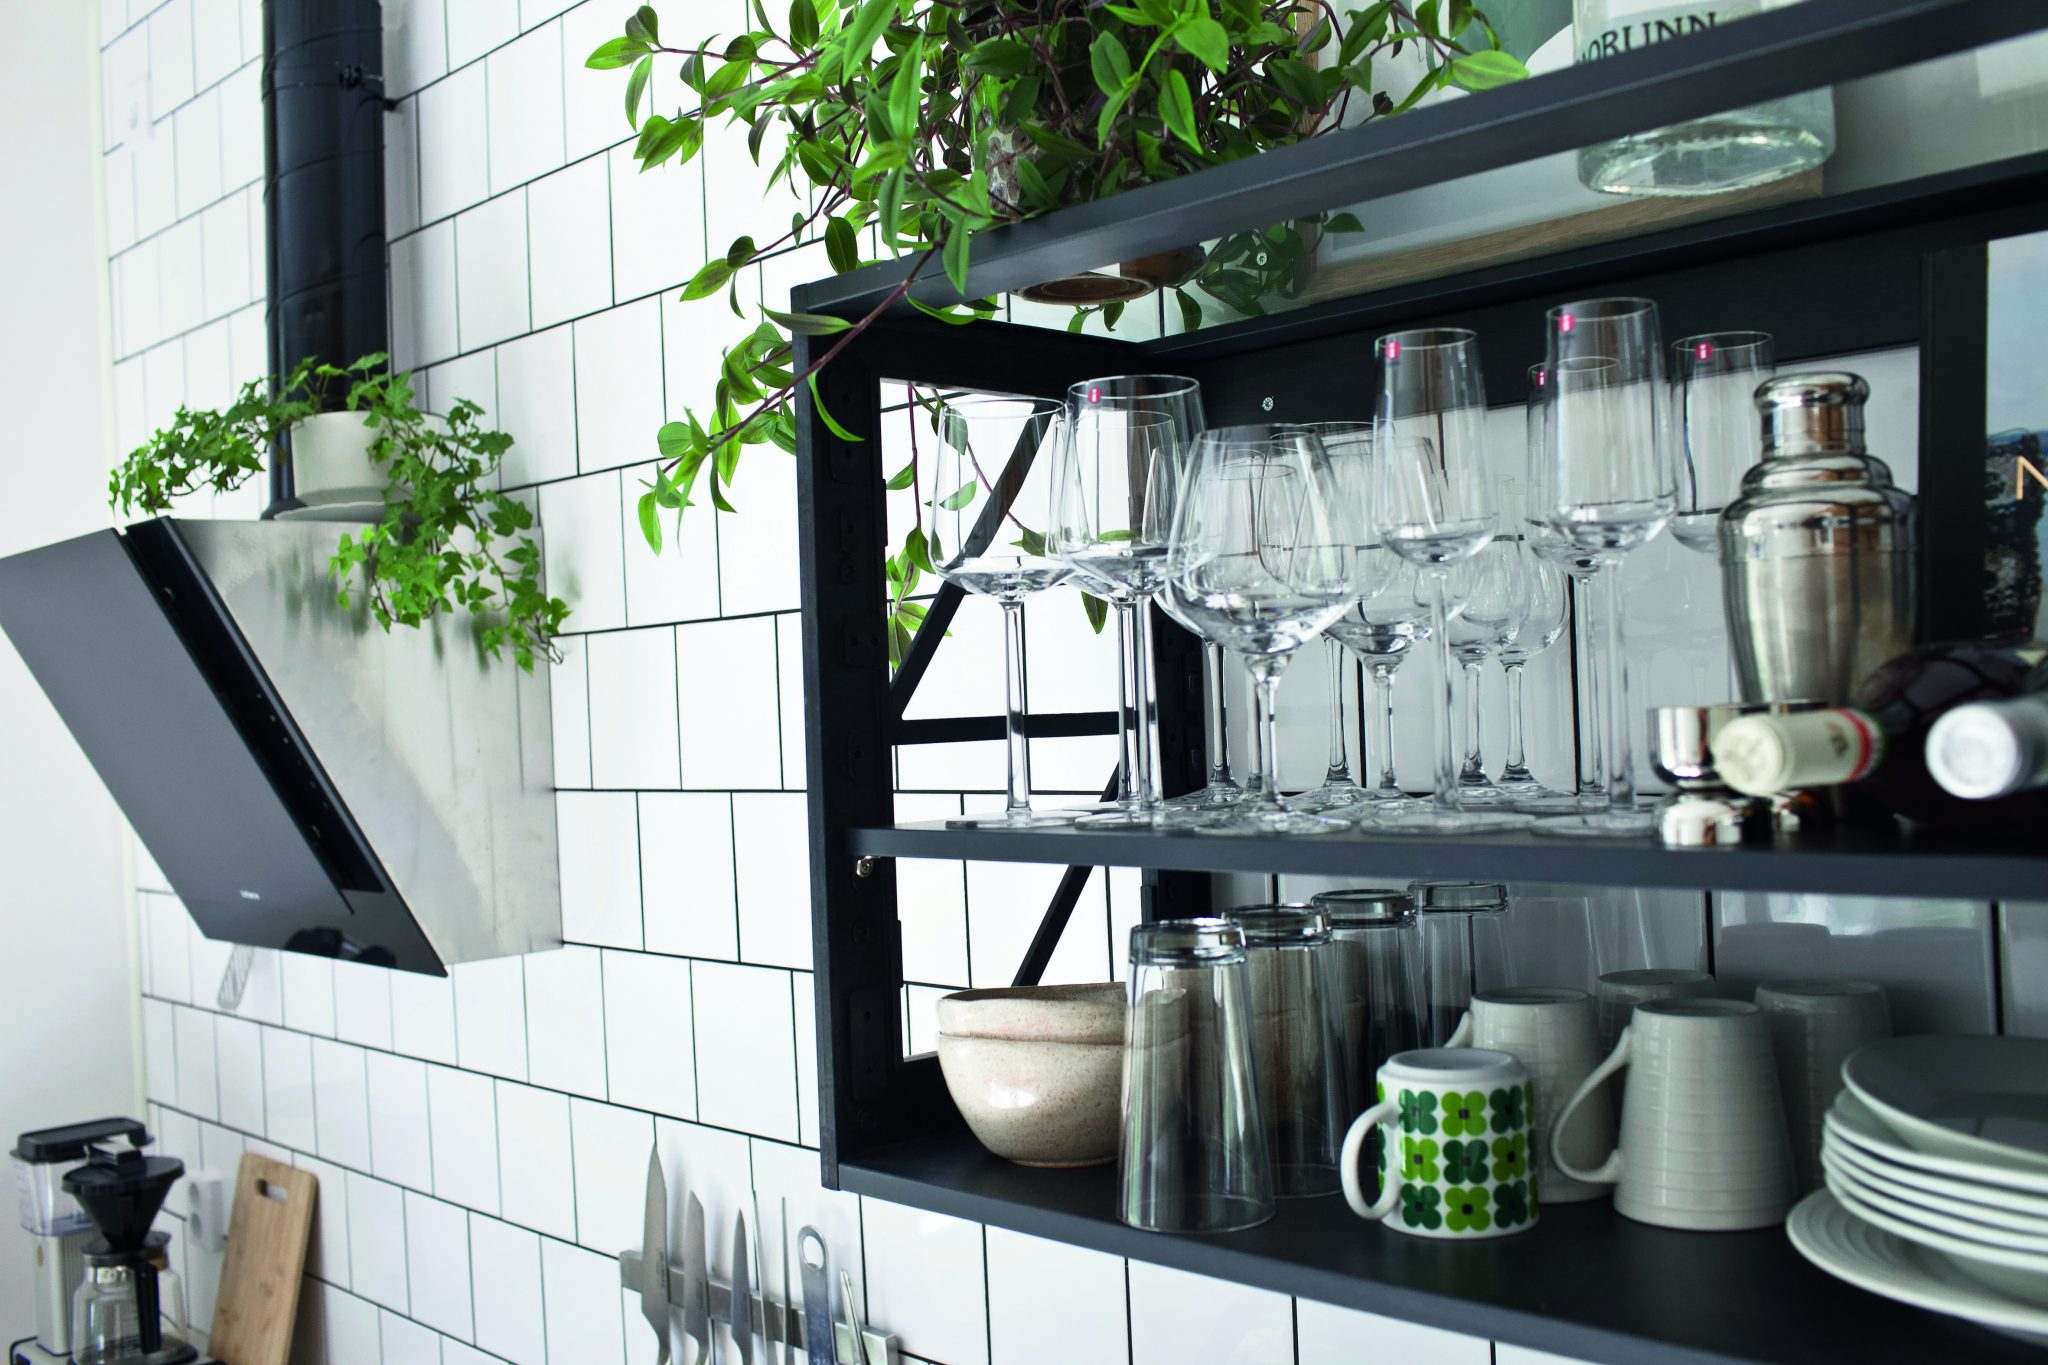 Miinus kitchen black open shelf biocomposite